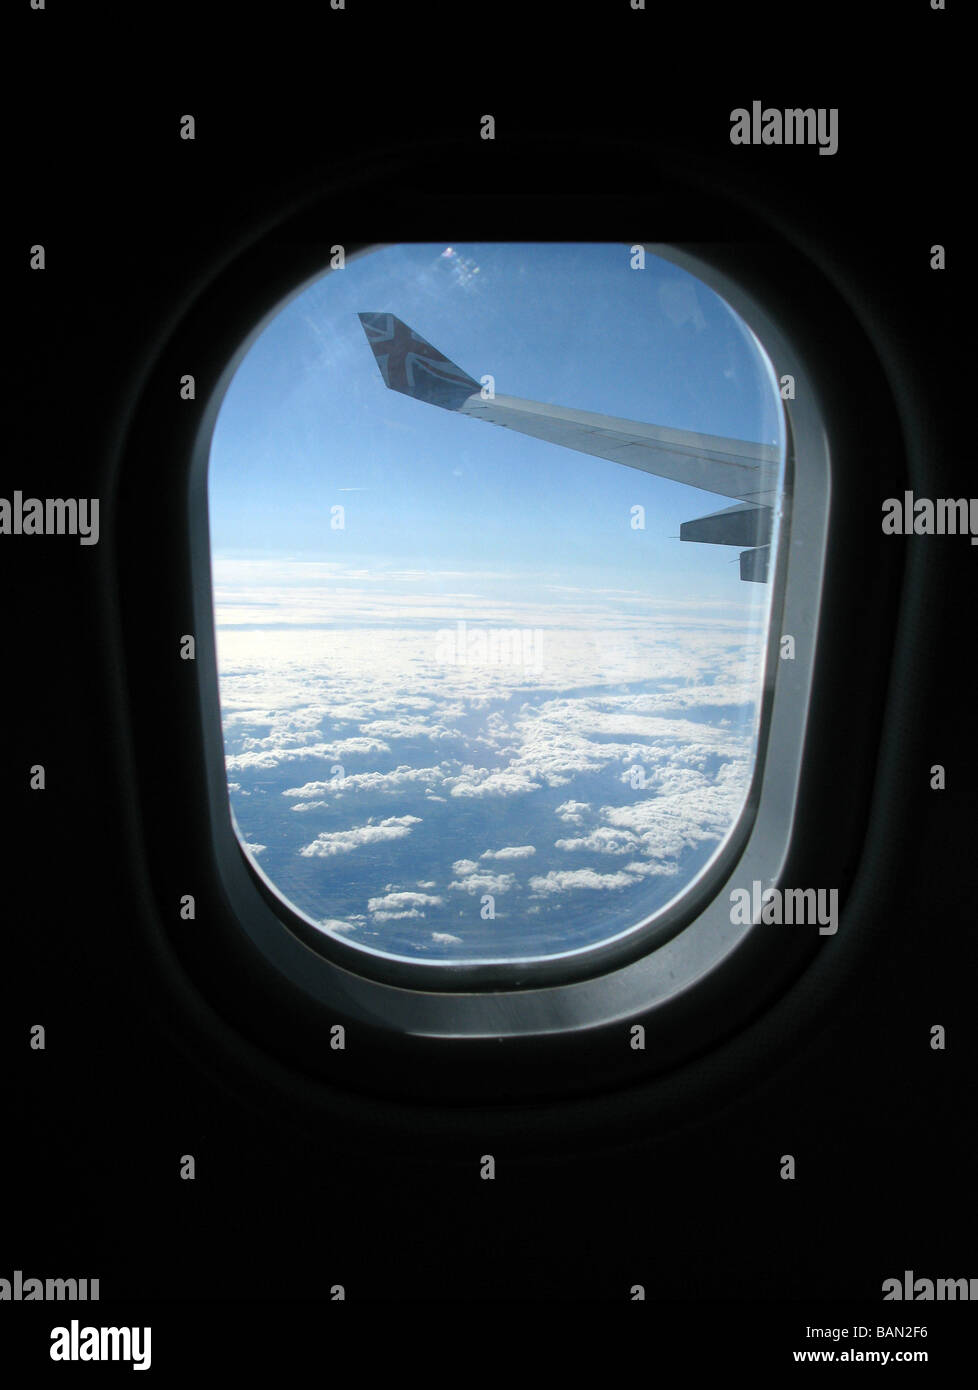 wing and sky at high altitude through the window of a passenger jet airliner - Stock Image